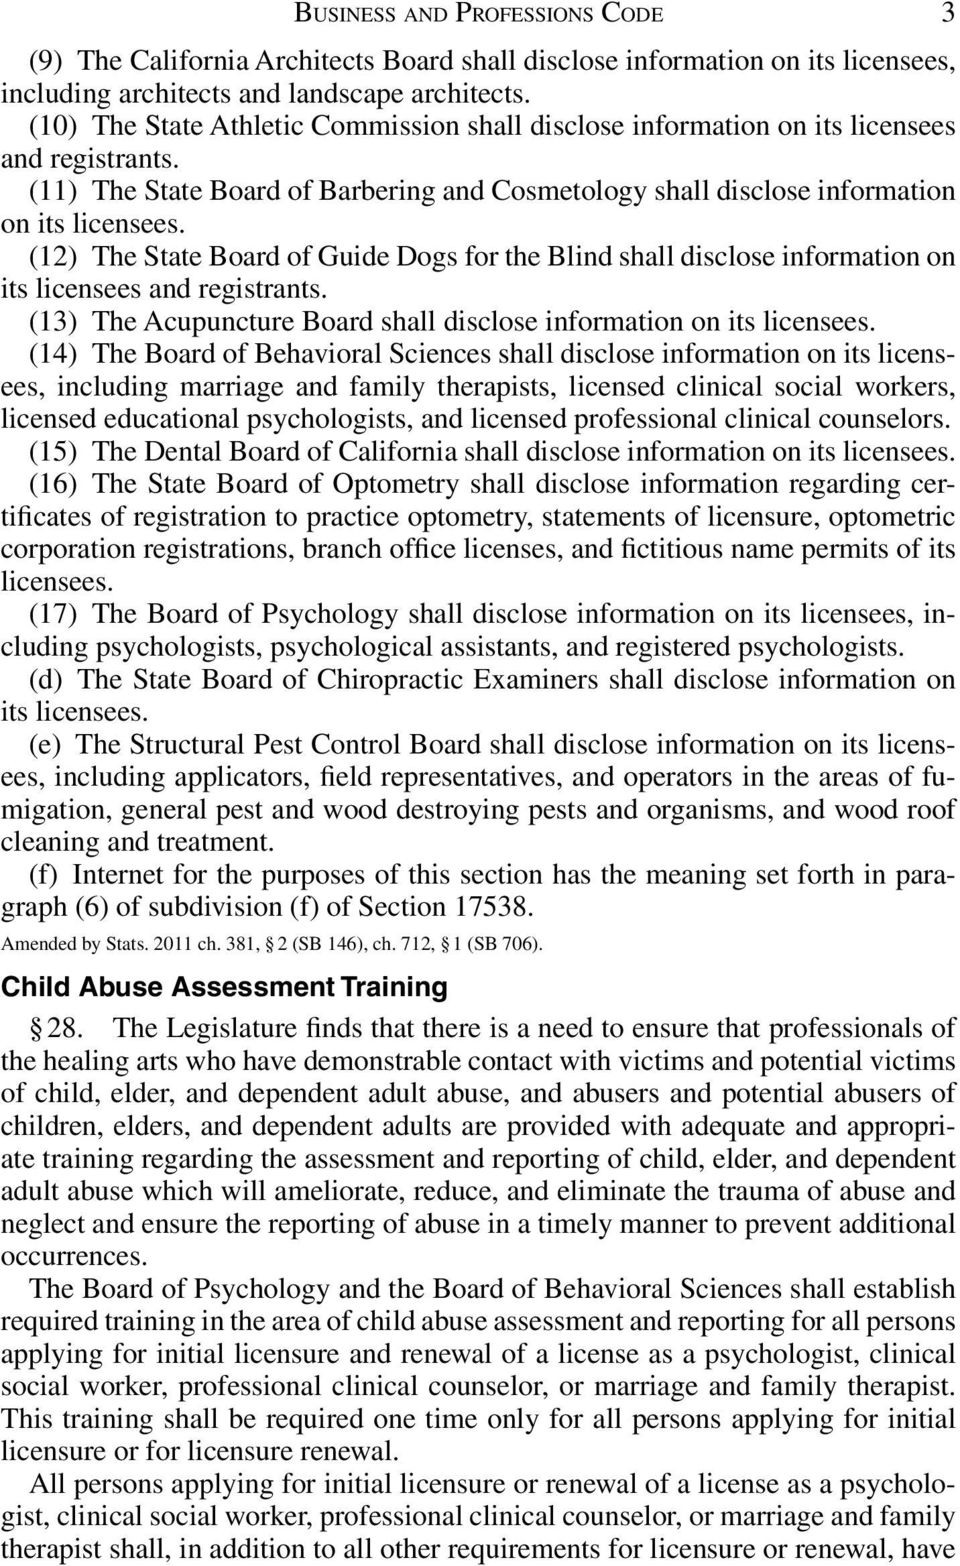 (12) The State Board of Guide Dogs for the Blind shall disclose information on its licensees and registrants. (13) The Acupuncture Board shall disclose information on its licensees.